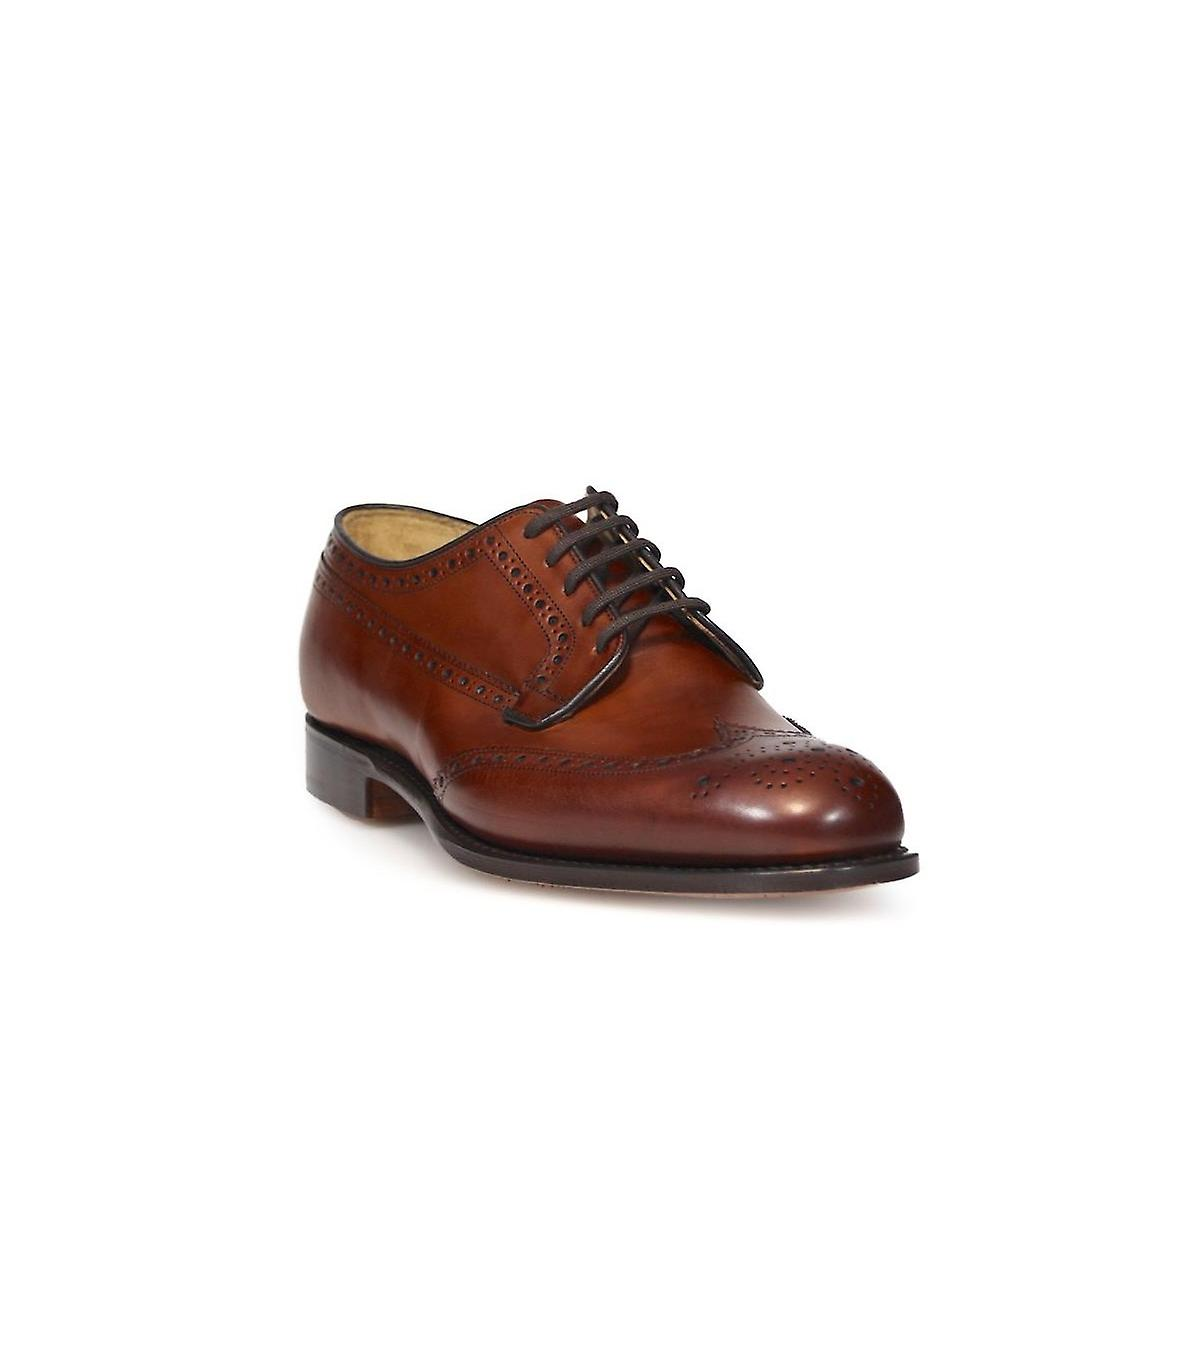 CHURCH-apos;S OUTWOOD 450 NEVADA WALNUT LACE UP